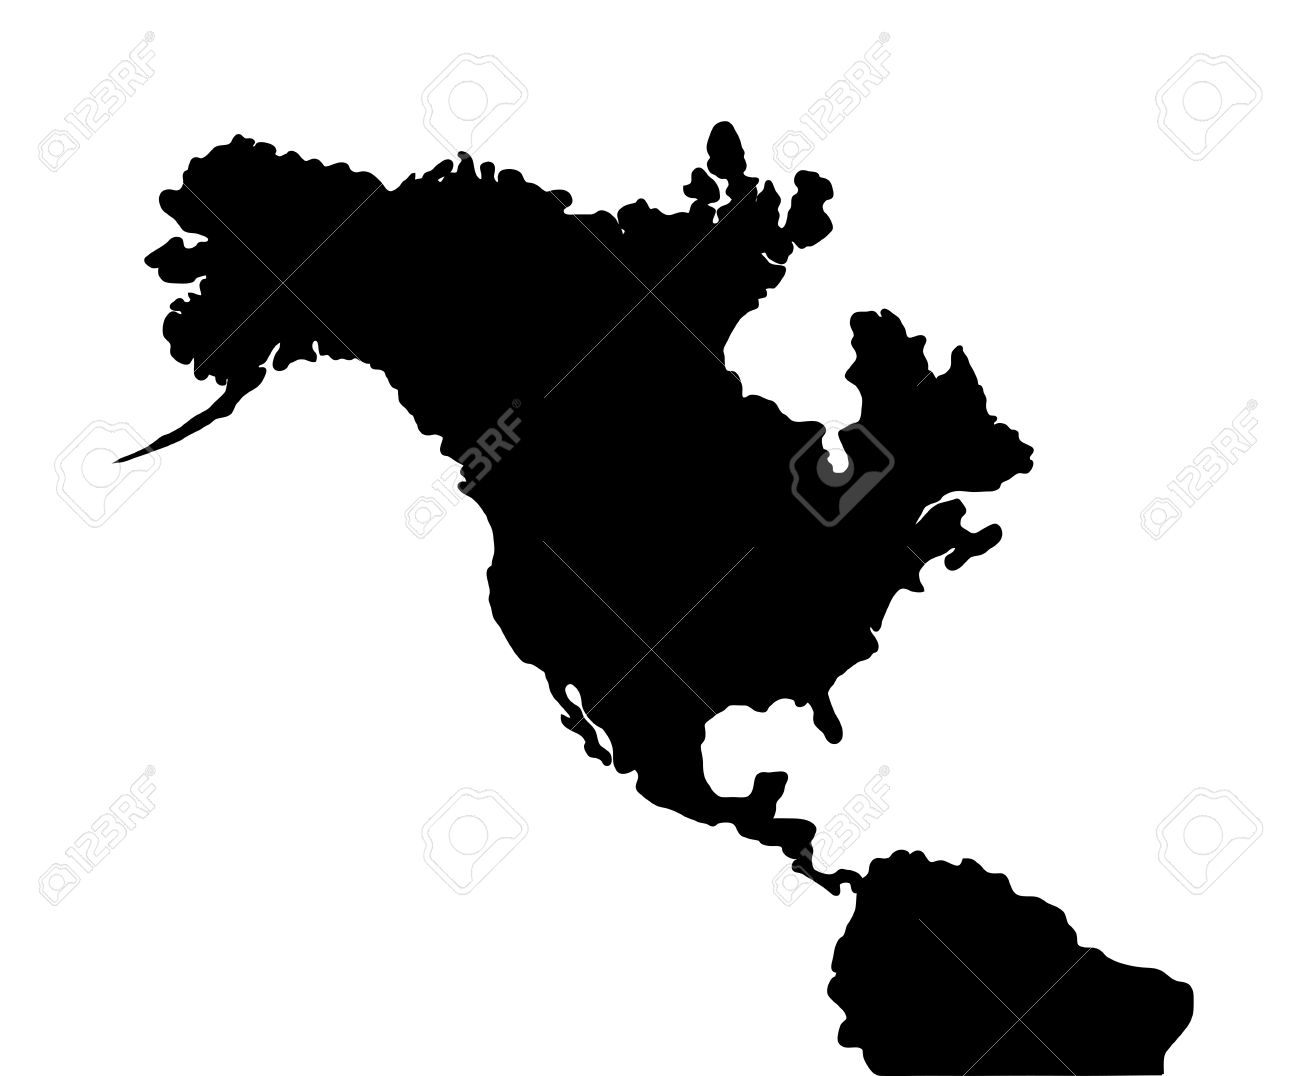 north america earthquake map of continent stock photo picture and